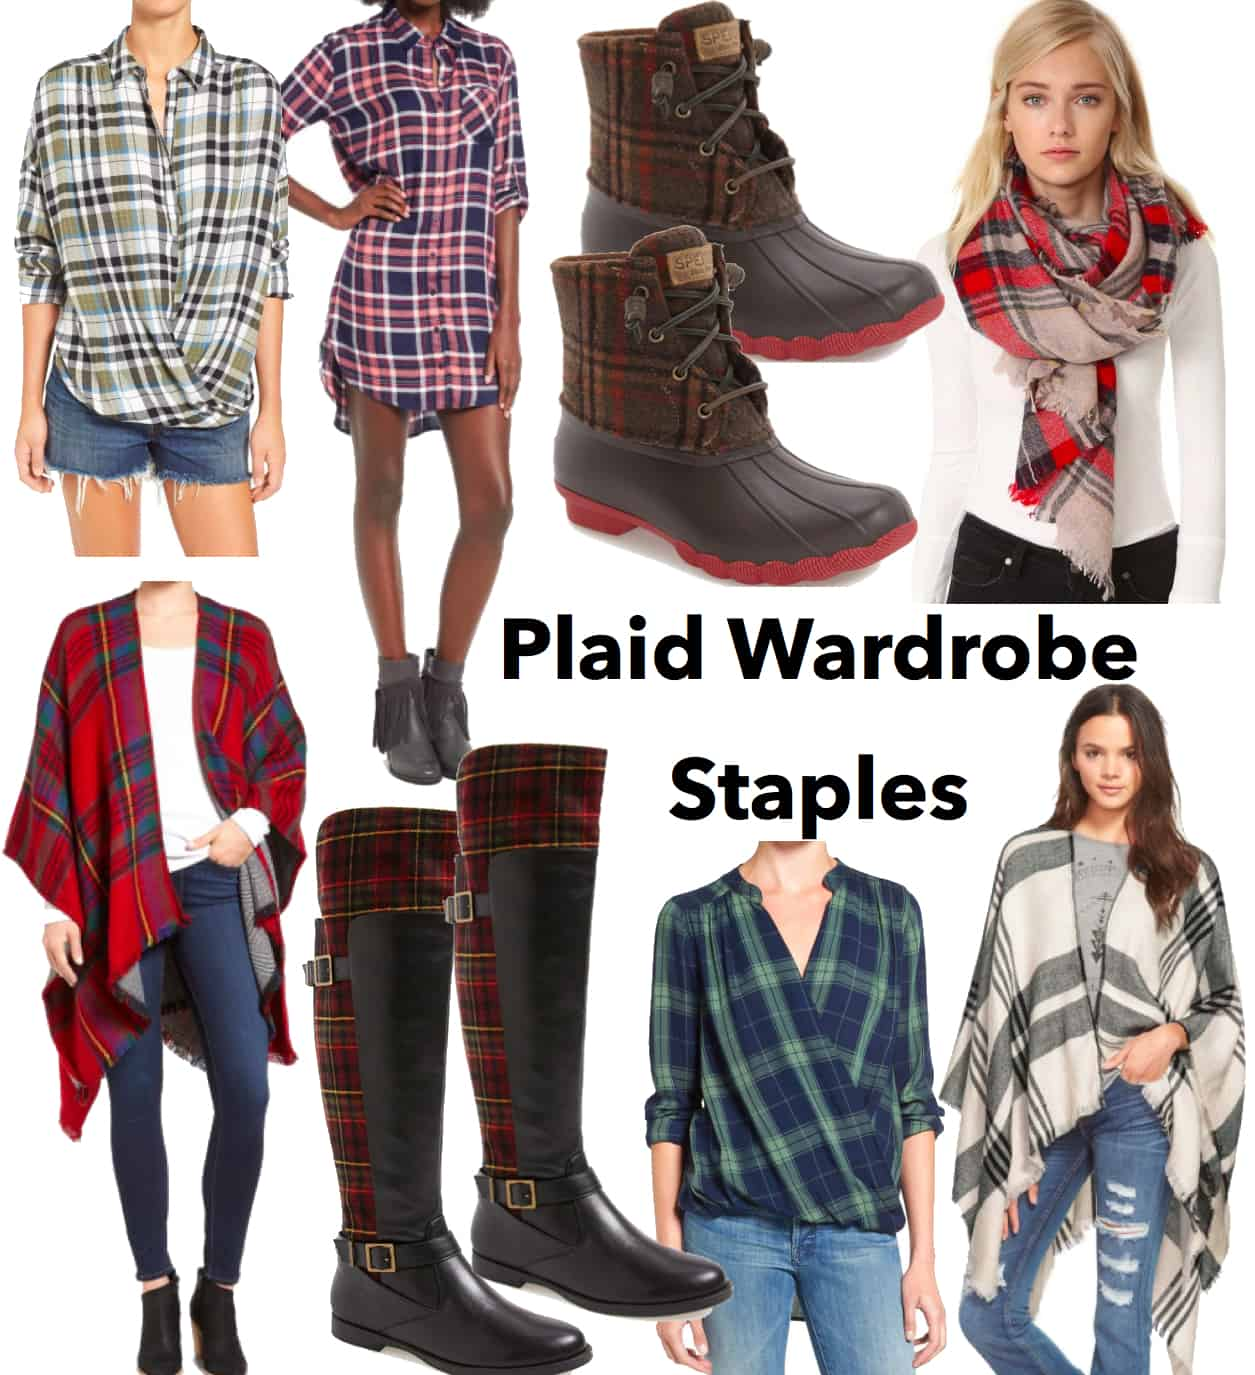 Plaid Wardrobe Staples